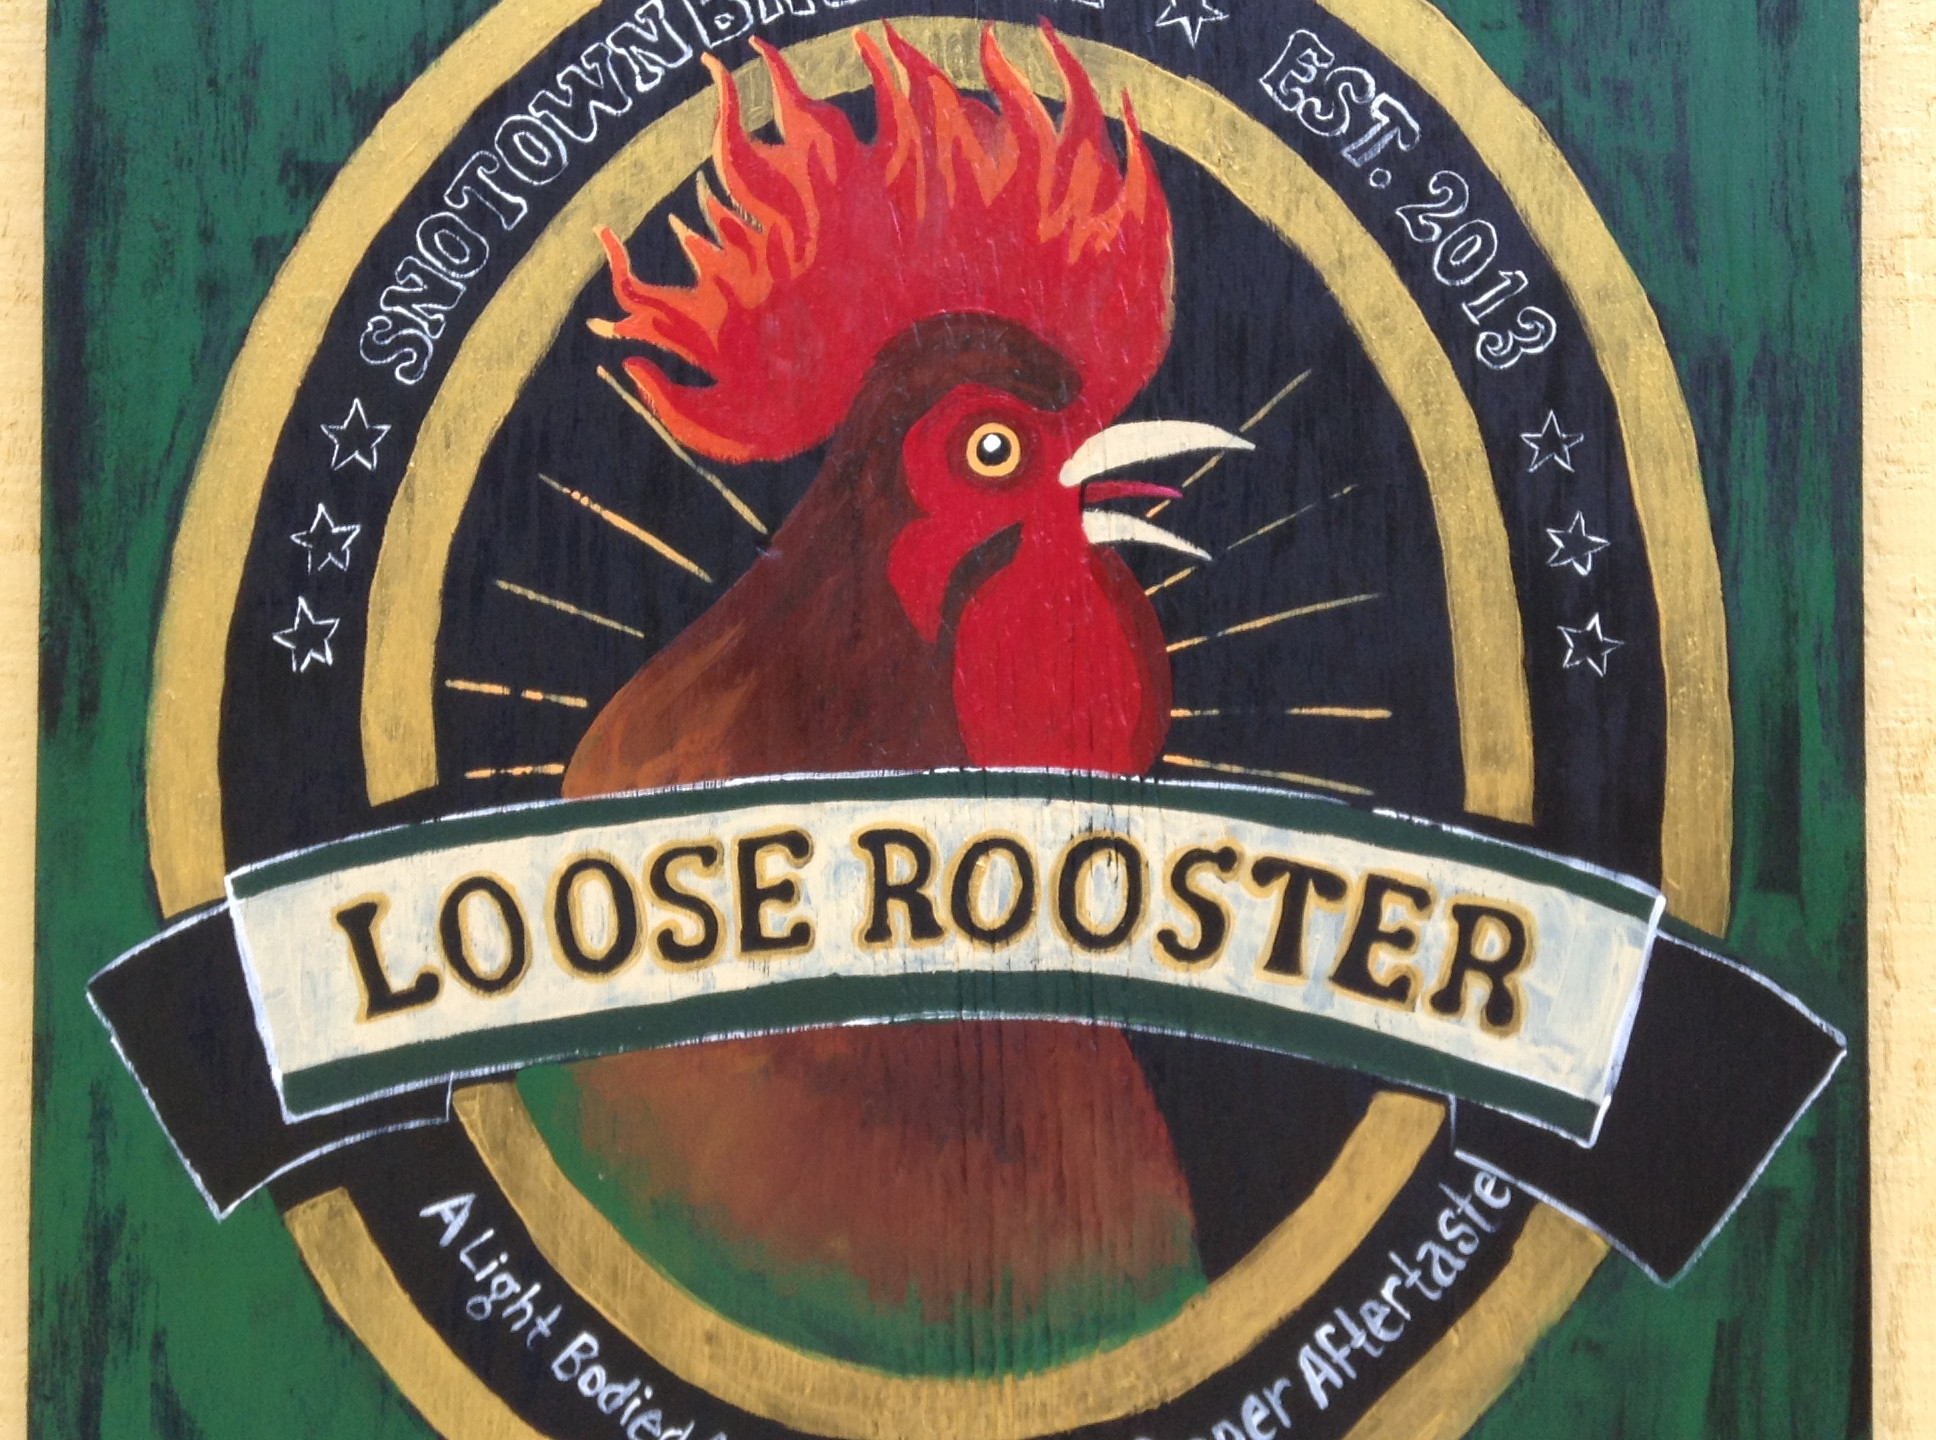 Loose Rooster beer by SnoTown Brewery in Snohomish, WA.